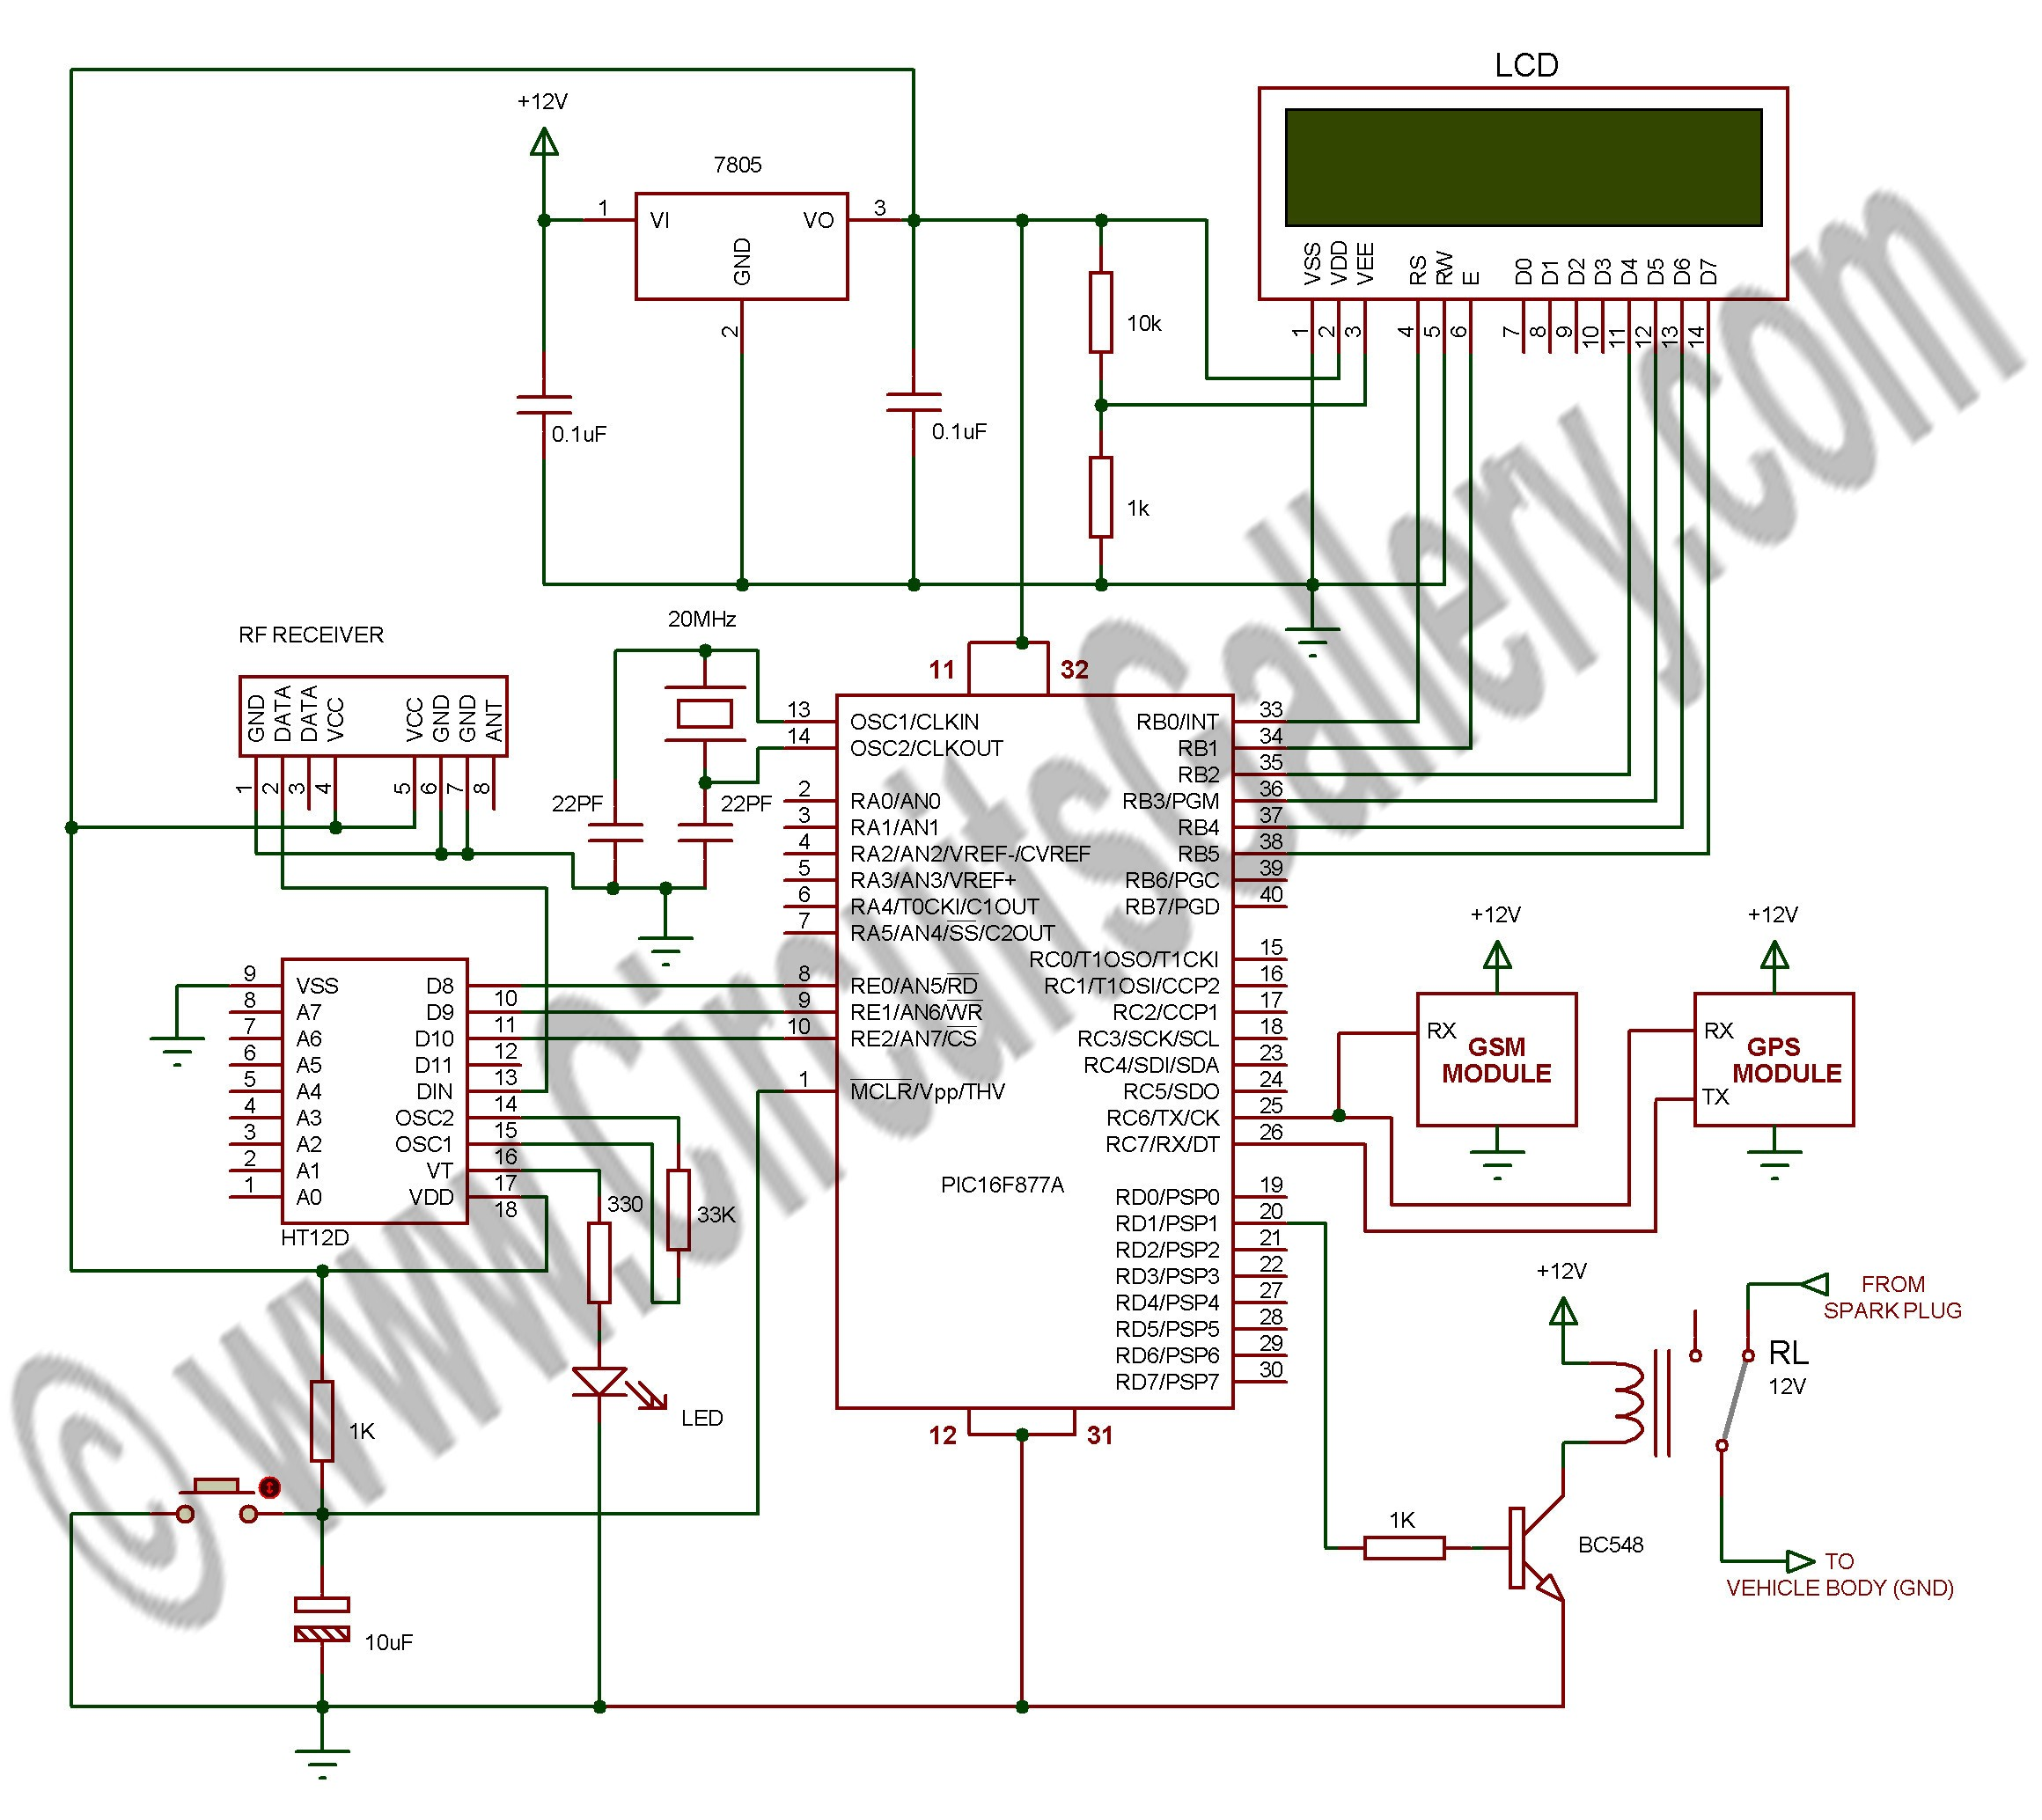 400 Watt Metal Halide Wiring Diagram Schematic Library Of Wiring Universal Ballast  Wiring Diagrams 240v Ballast